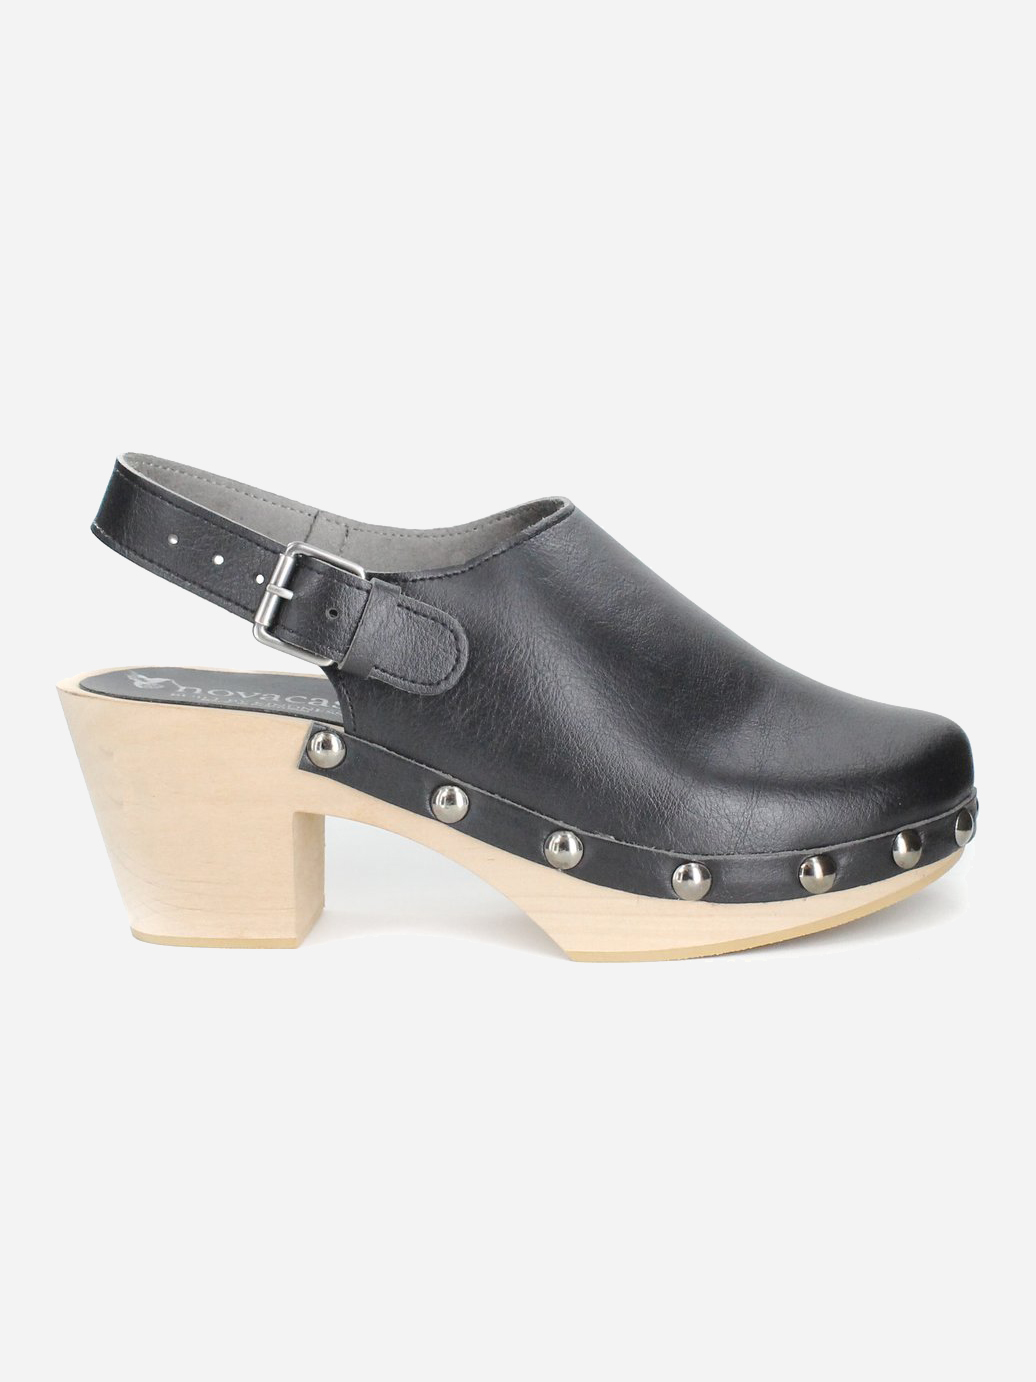 Sustainable Clogs - Novacas Edith Clog from MooShoes